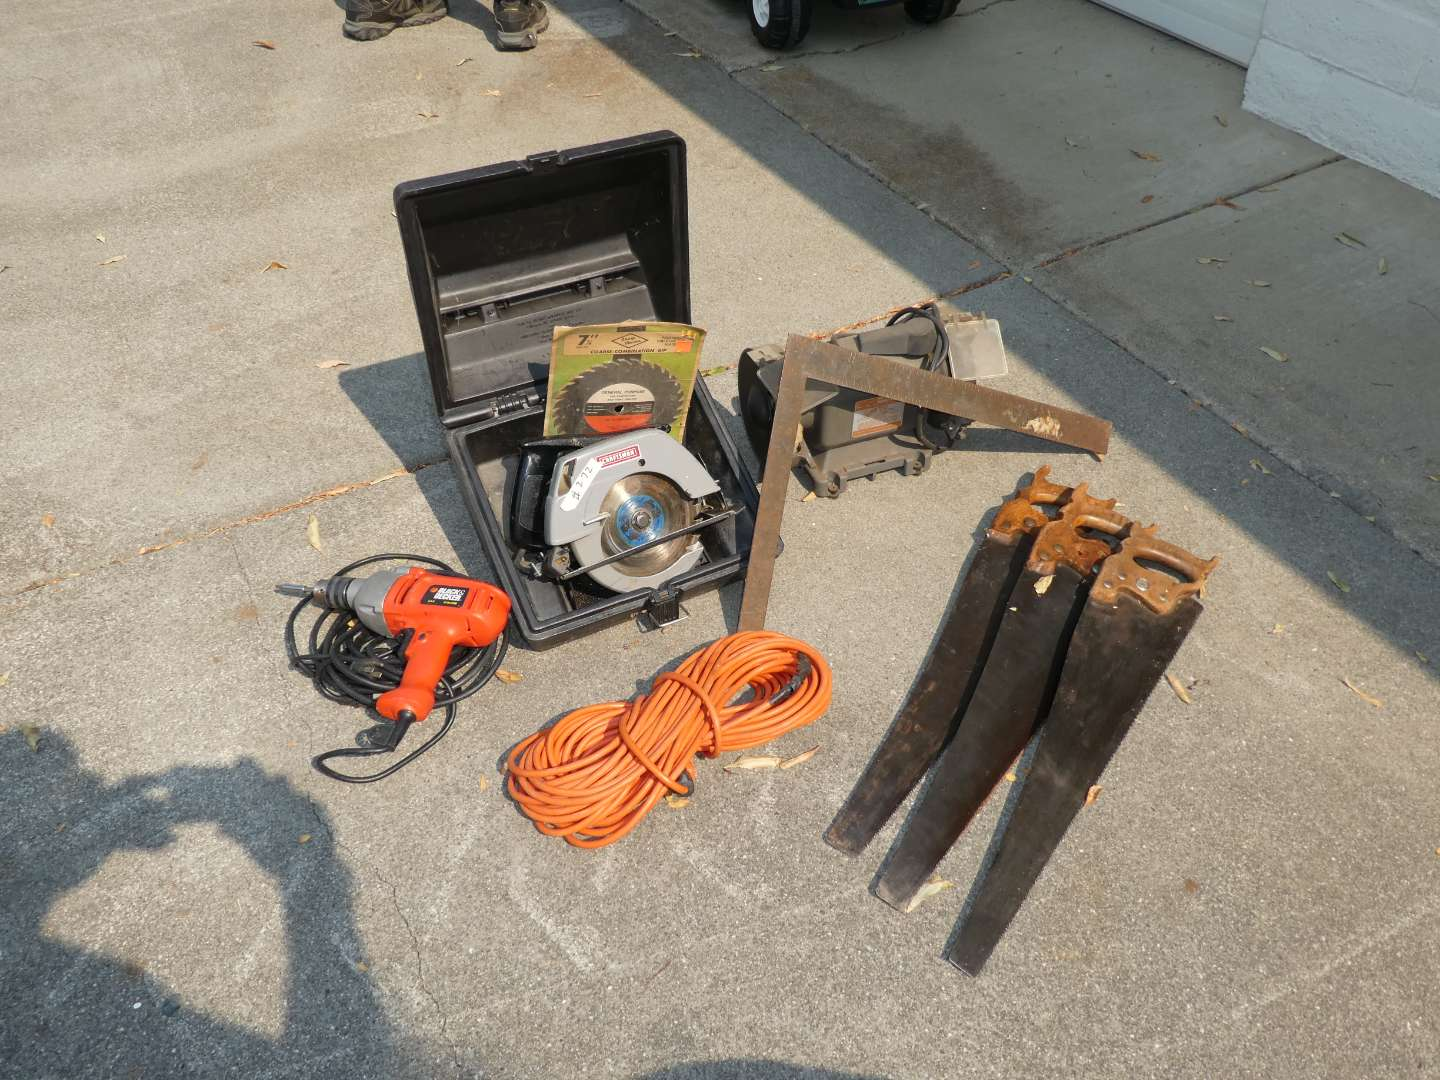 Lot # 272 - Craftsman Bench Grinder & Skill Saw, Black & Decker Drill, Extension Cord & Assorted Hand Saws  (main image)